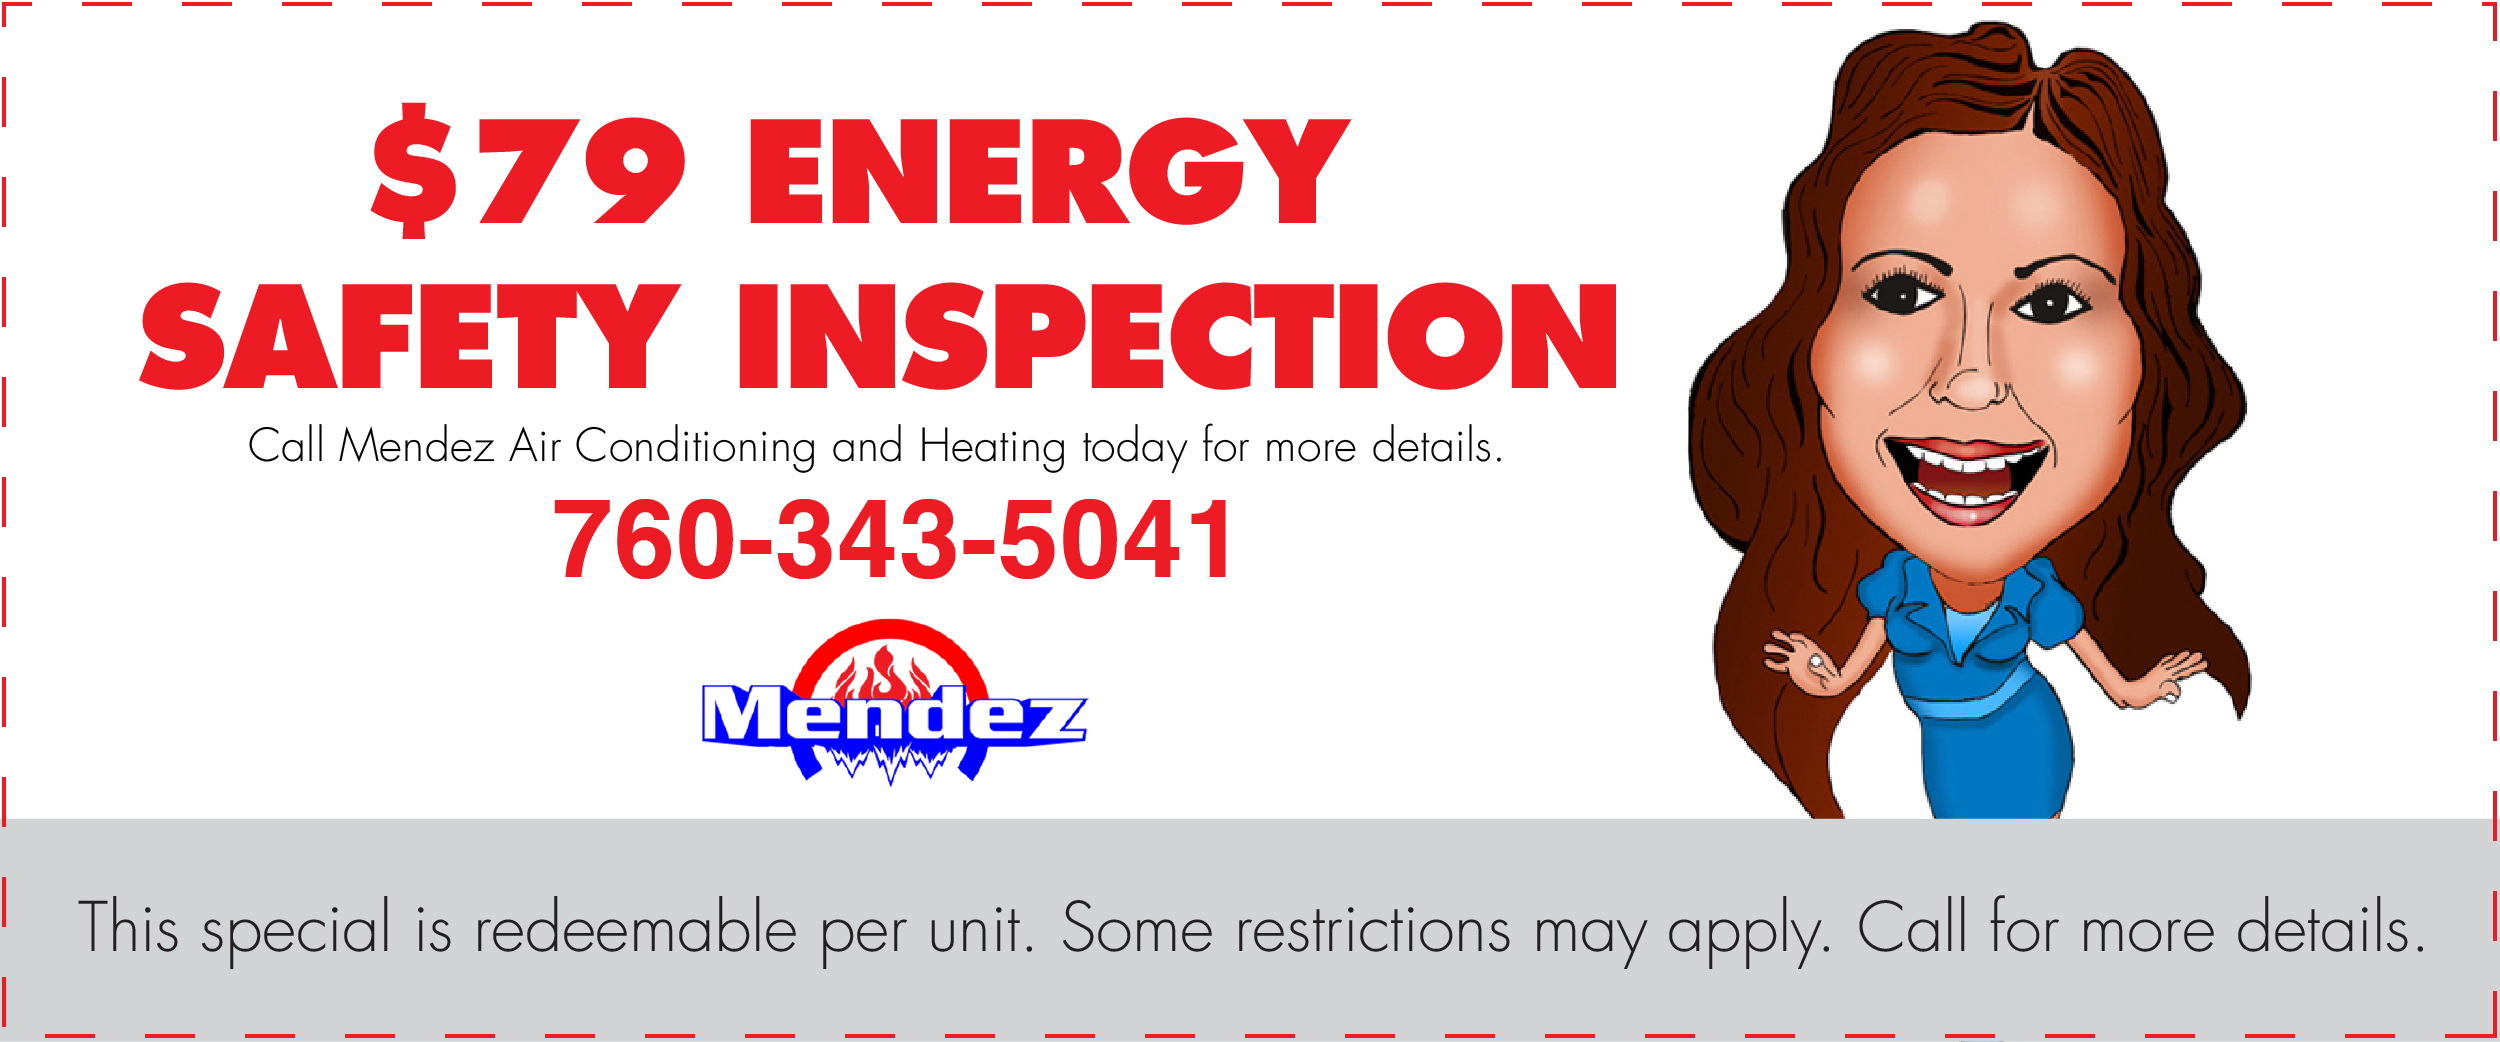 energy safety inspection